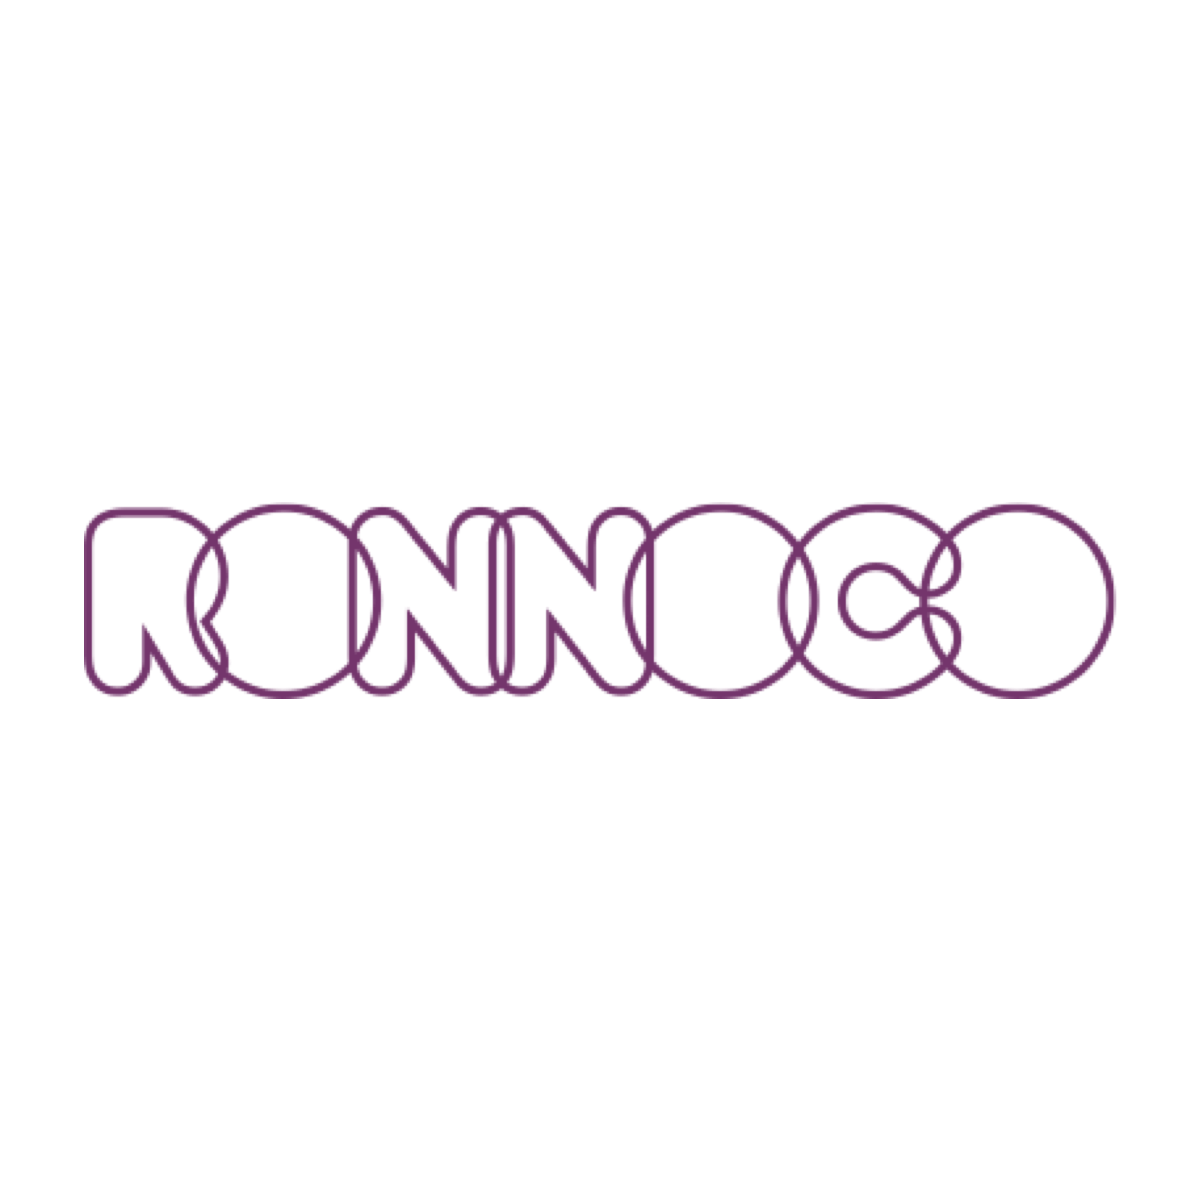 Ronnoco signee.png